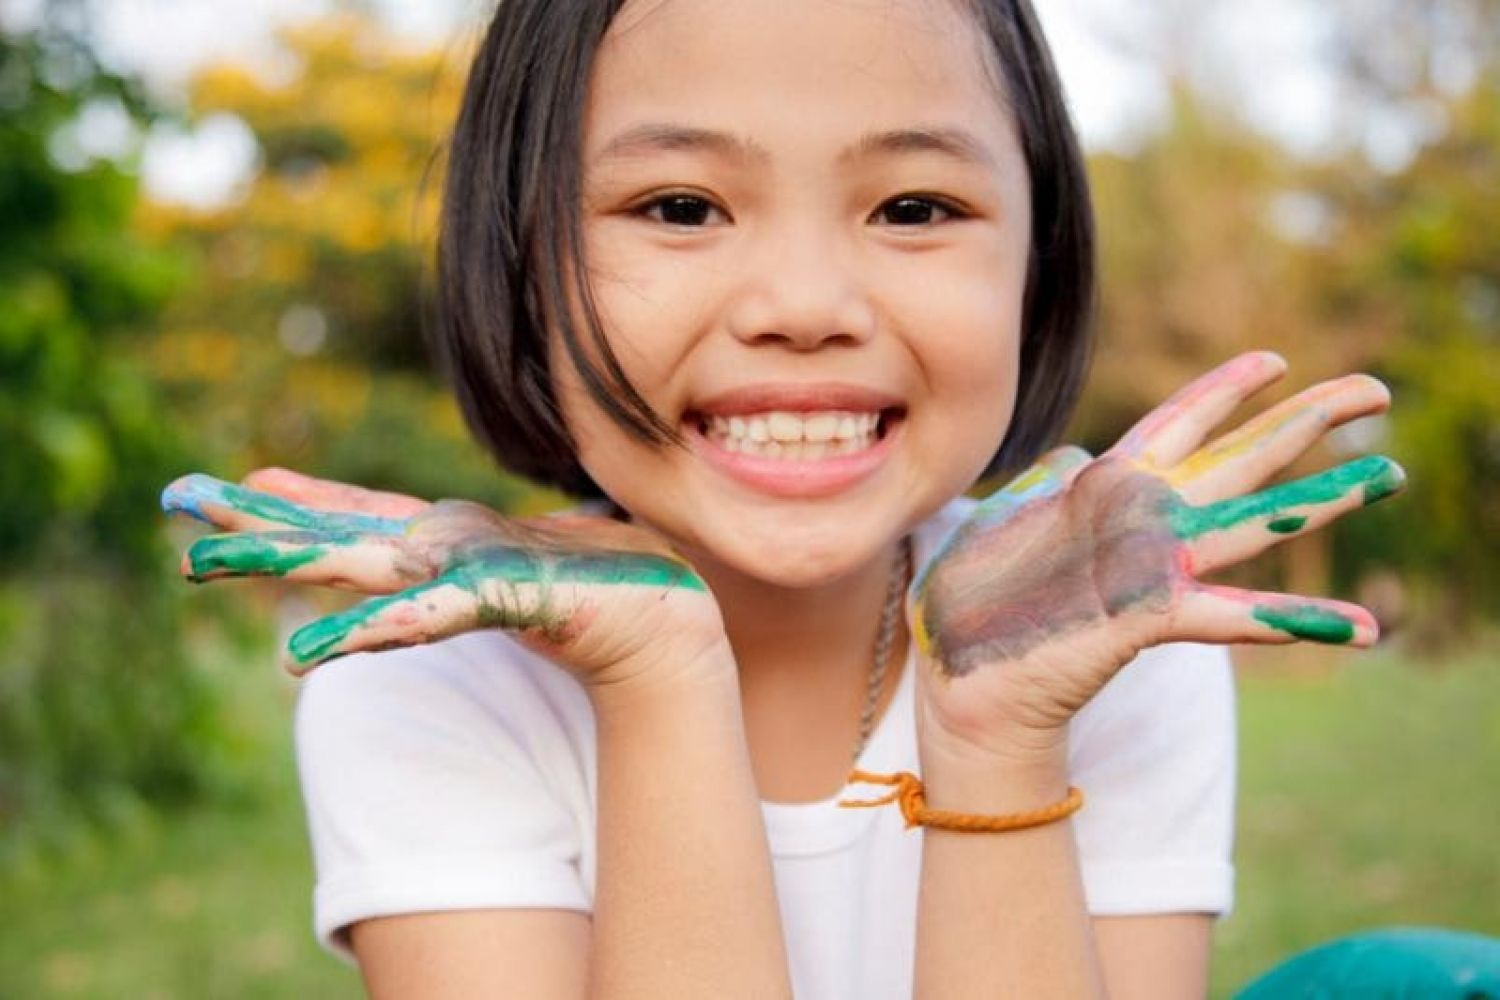 Can Creativity Help Kids Get Through Challenge?